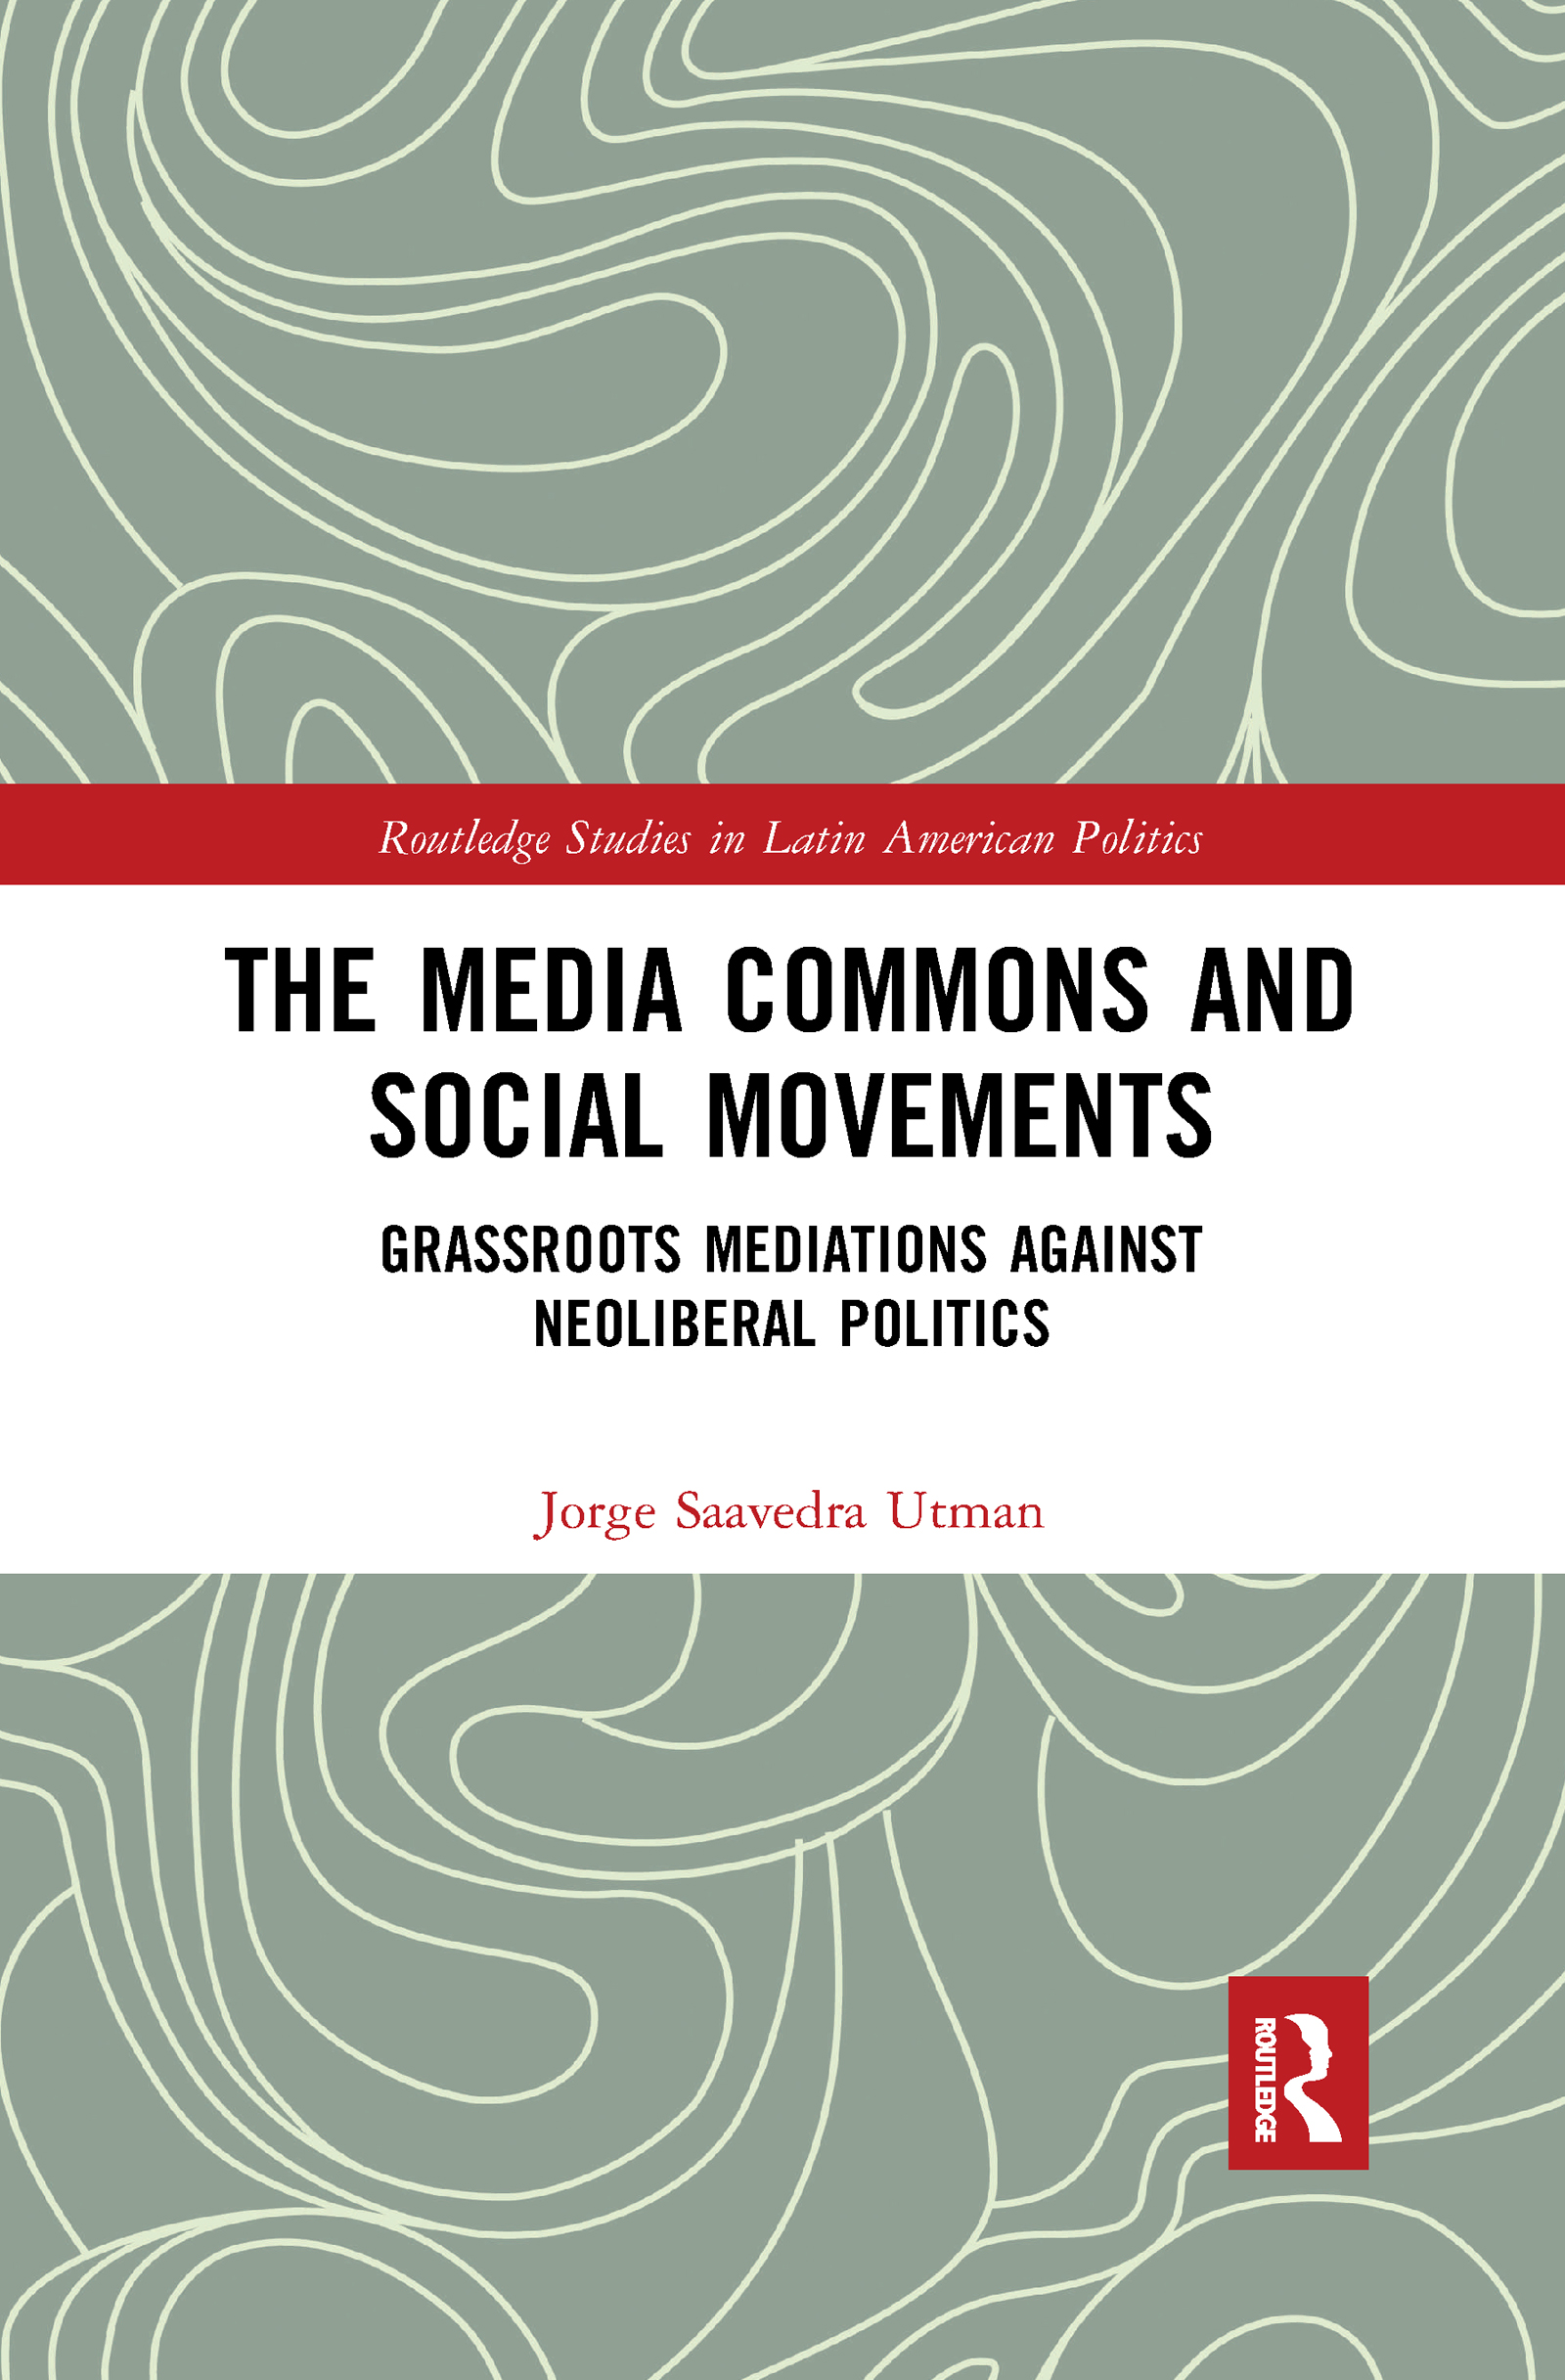 The Media Commons and Social Movements